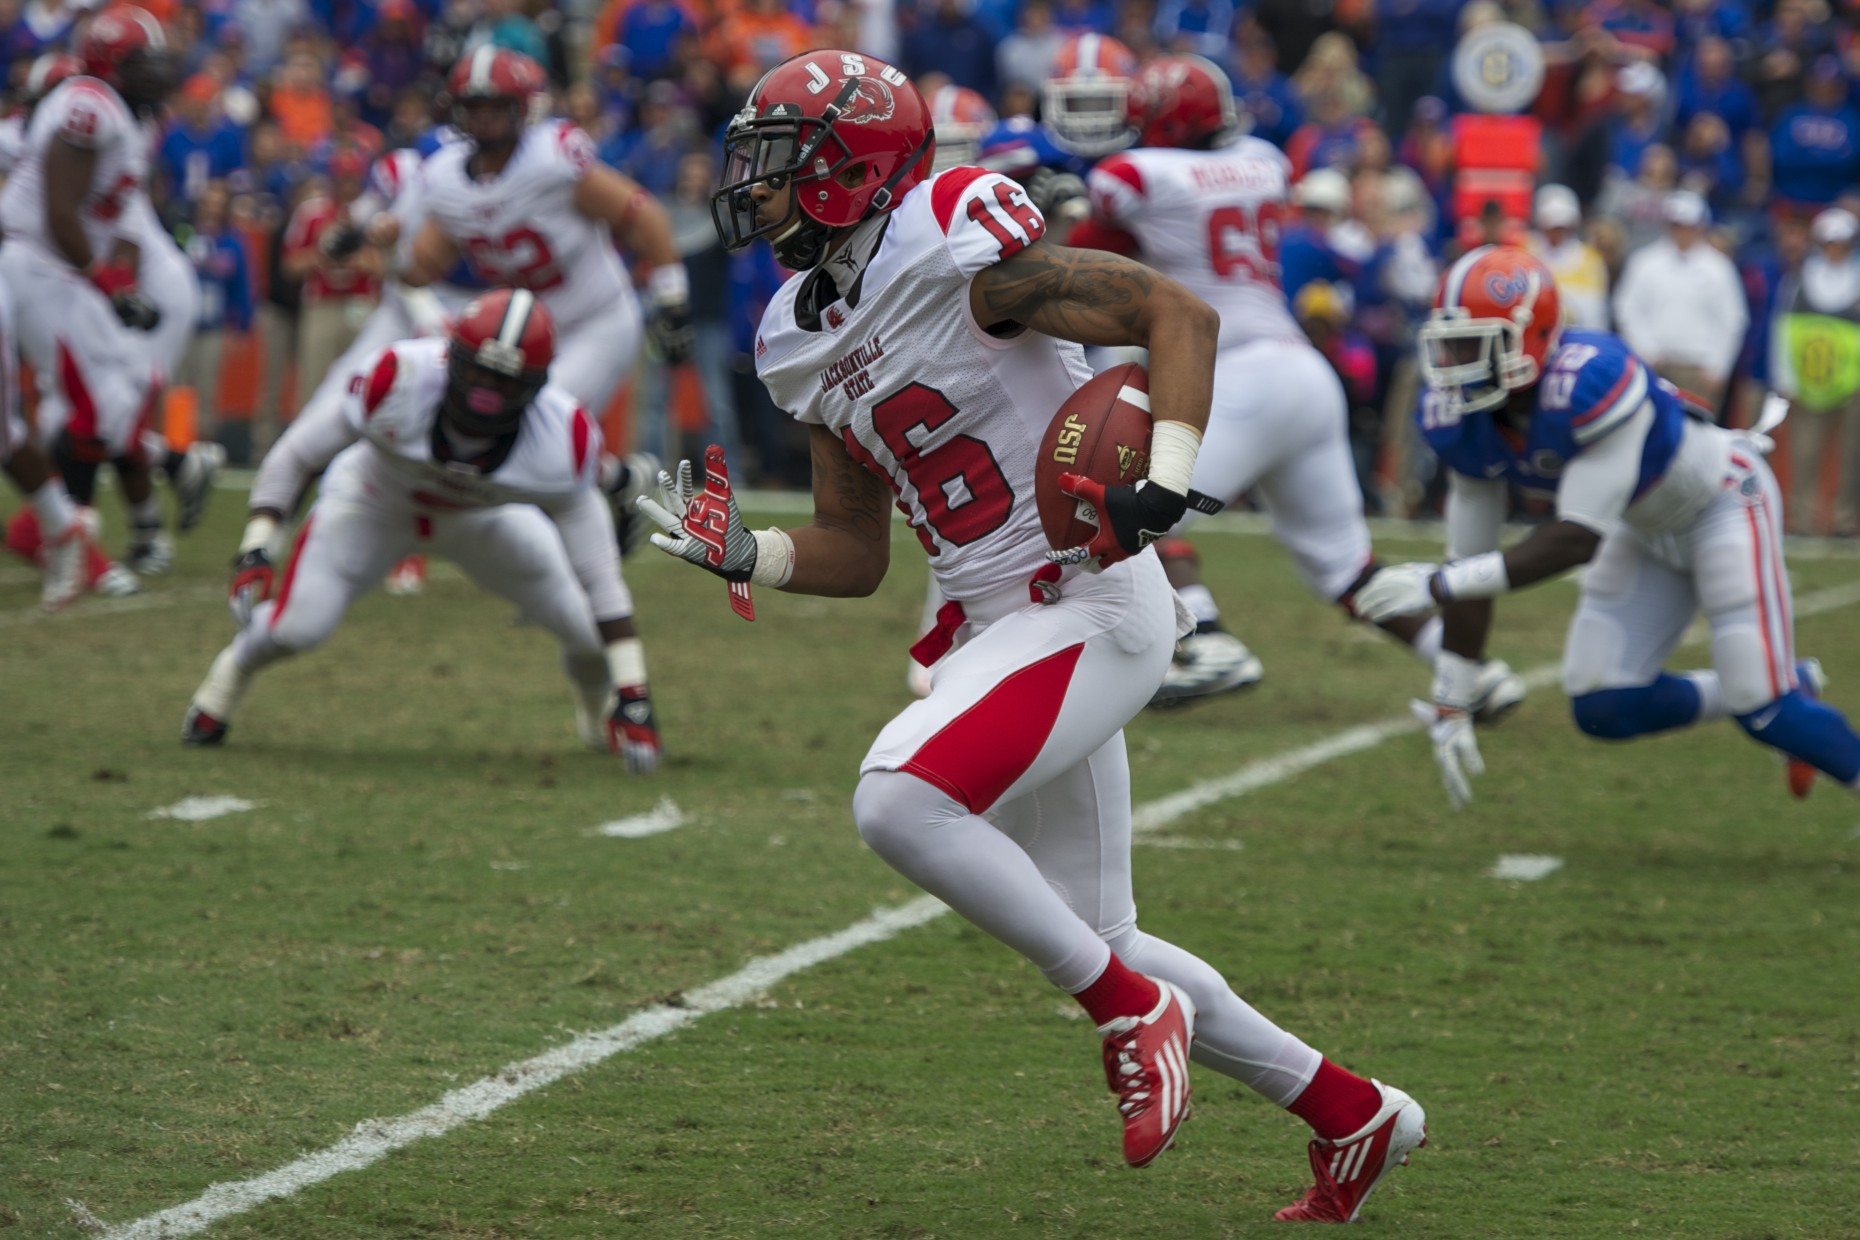 Jacksonville State wide receiver Alan Bonner (16) gets a first down in the first quarter of Saturday's game.